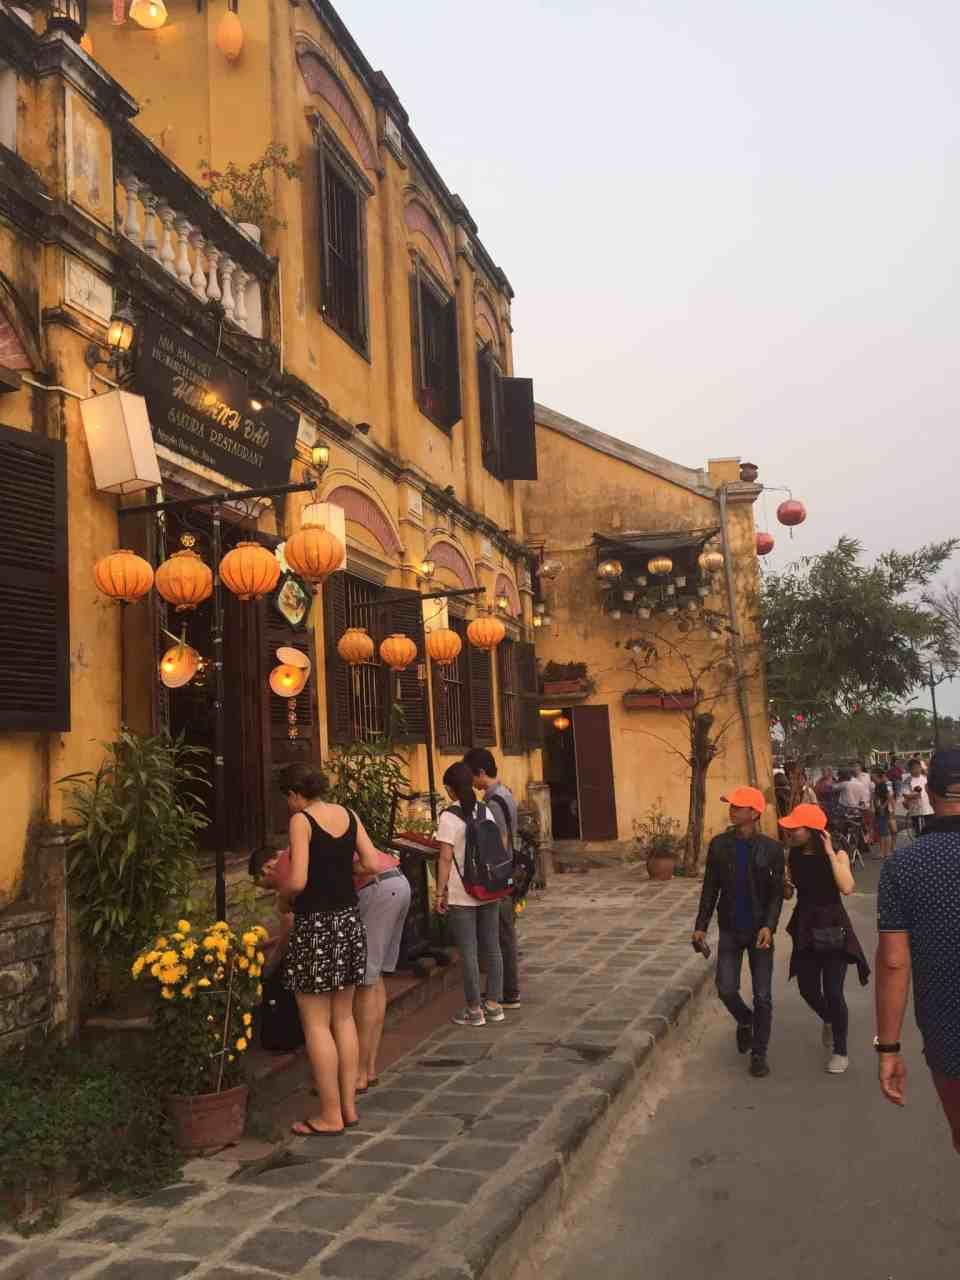 Tidlig aftenstemning i Hoi An City